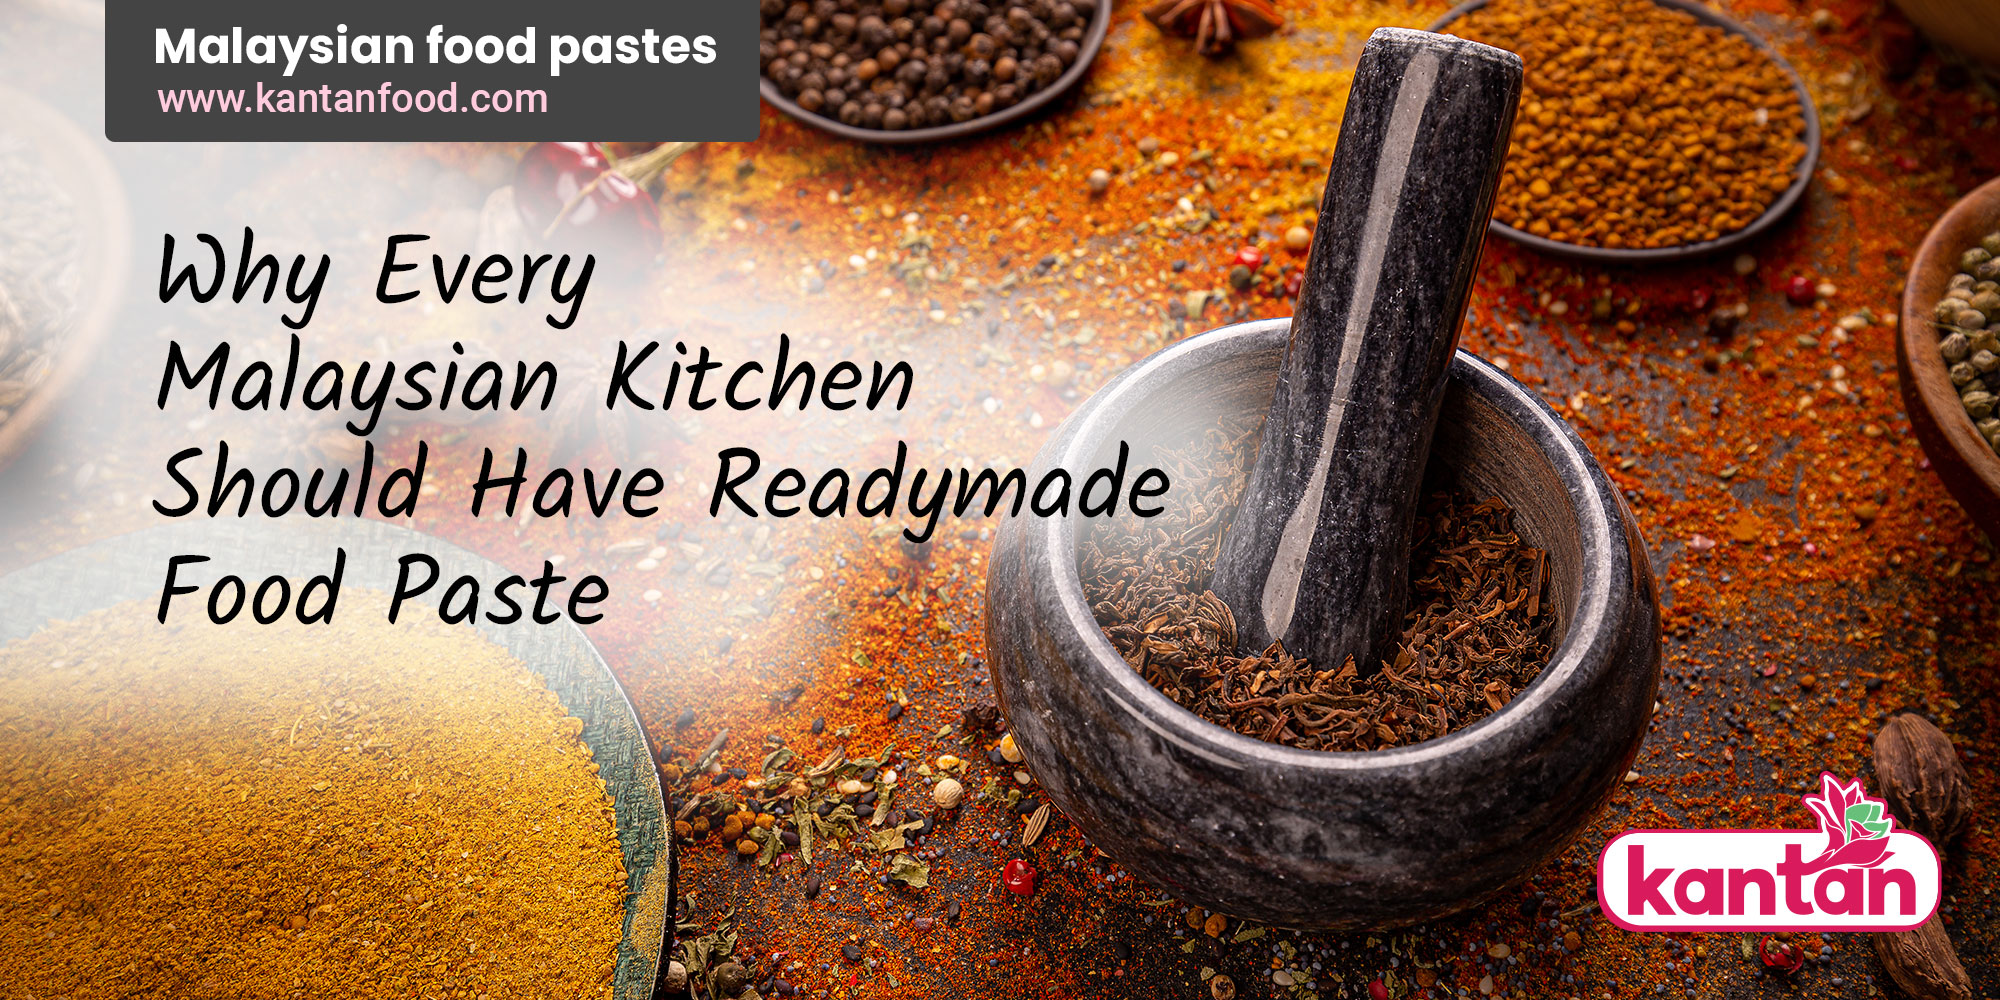 why-every-malaysian-kitchen-should-have-readymade-food-paste